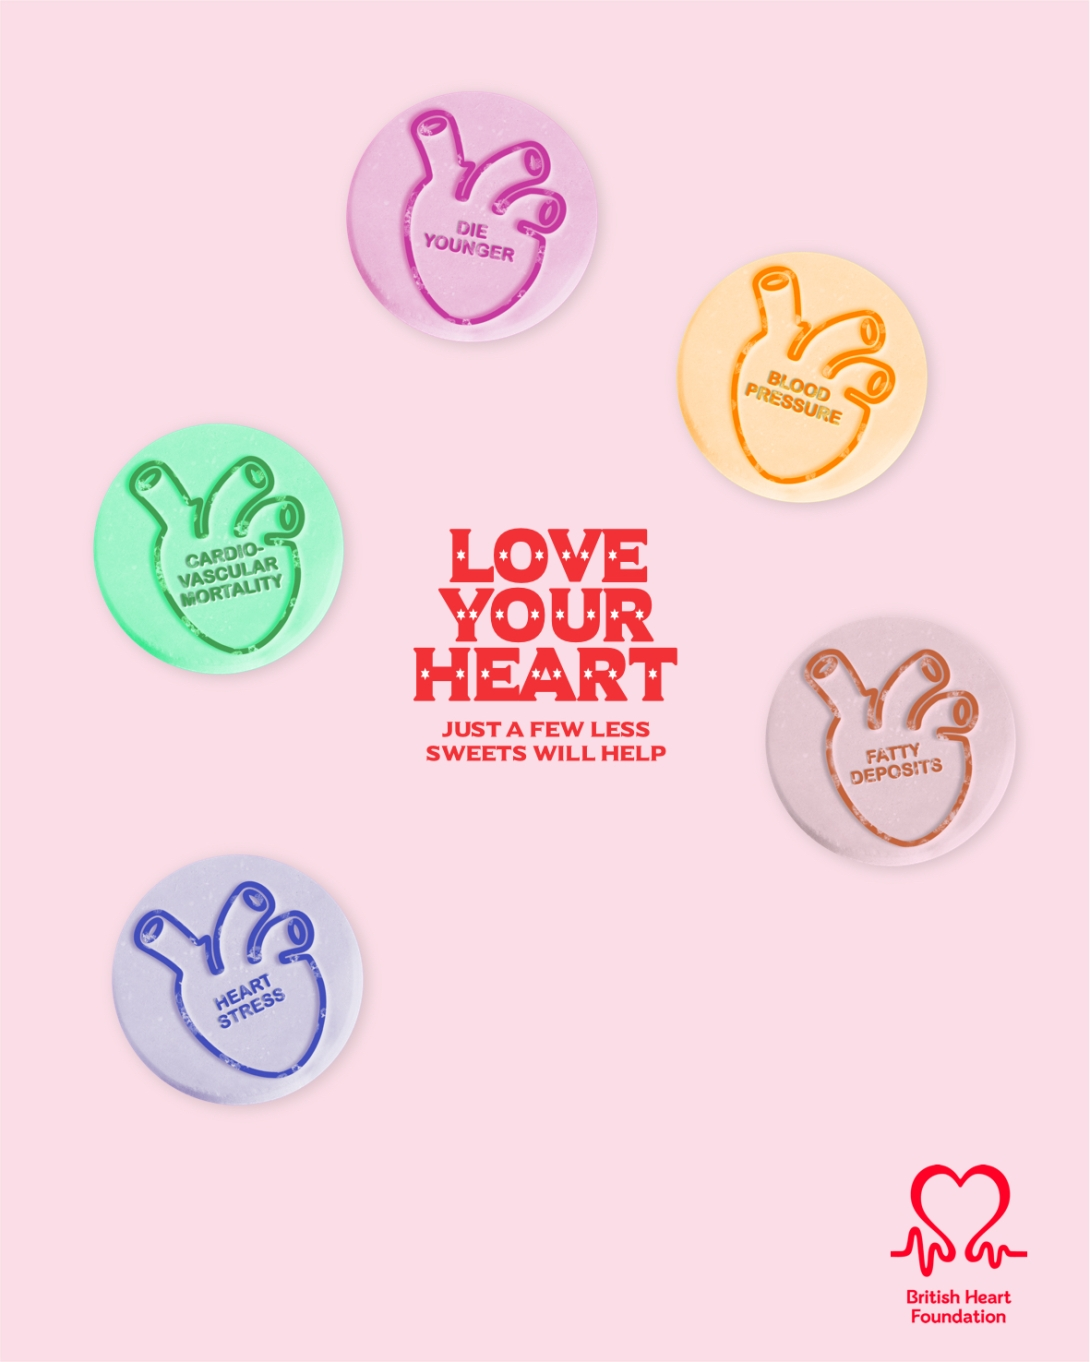 love your heart - a quick advertising concept for the British Heart Foundation